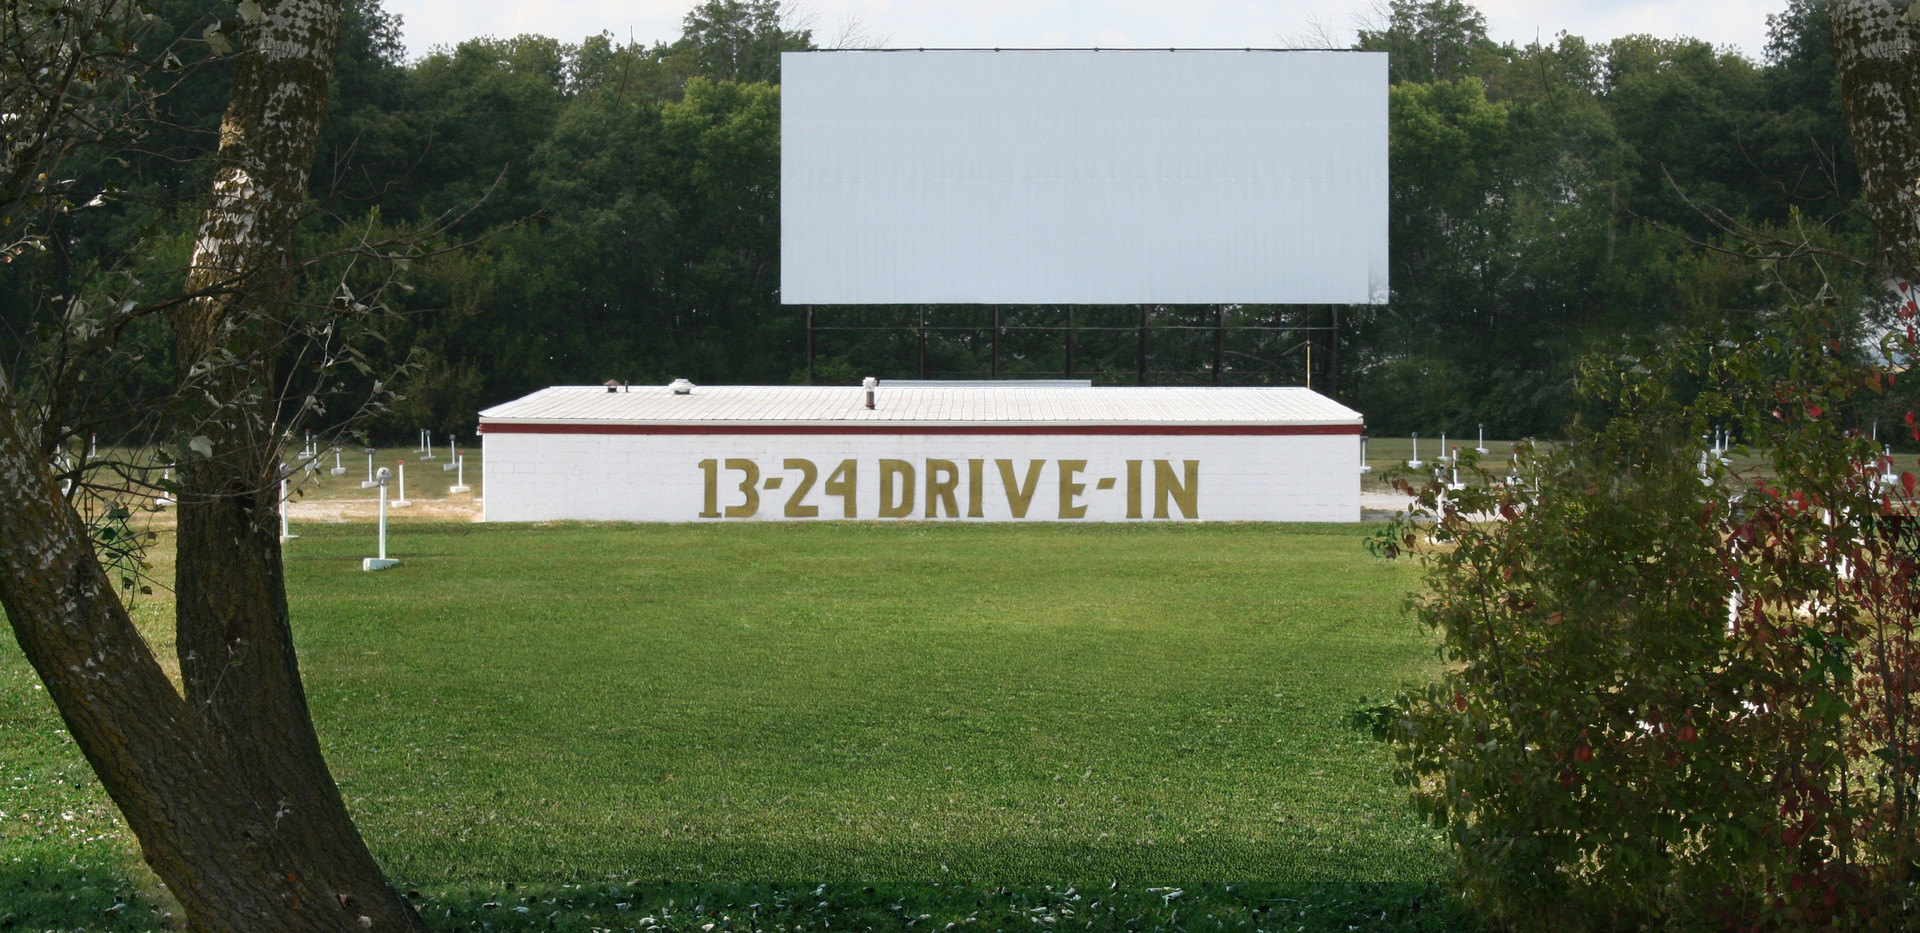 13-24 Drive In